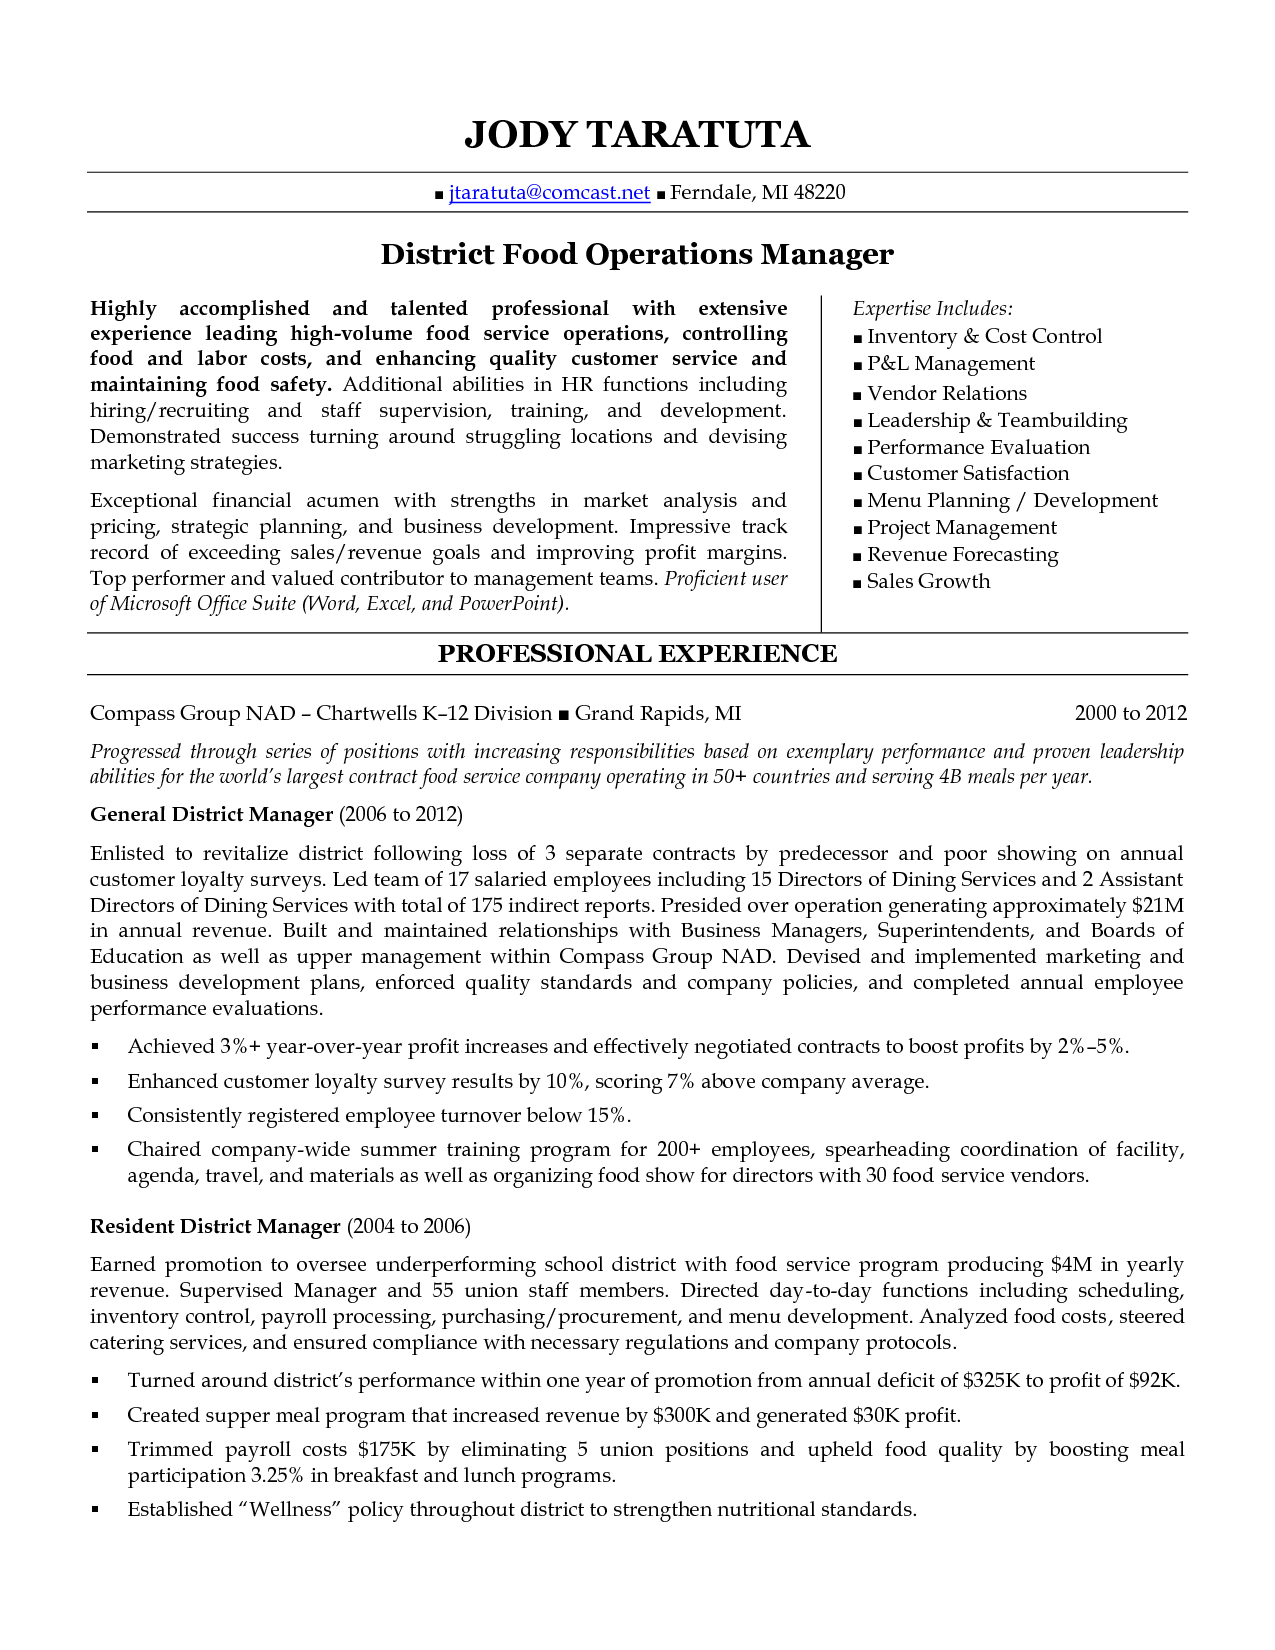 Nurse Manager Resume District Manager Resume  District Food Operations Manager In